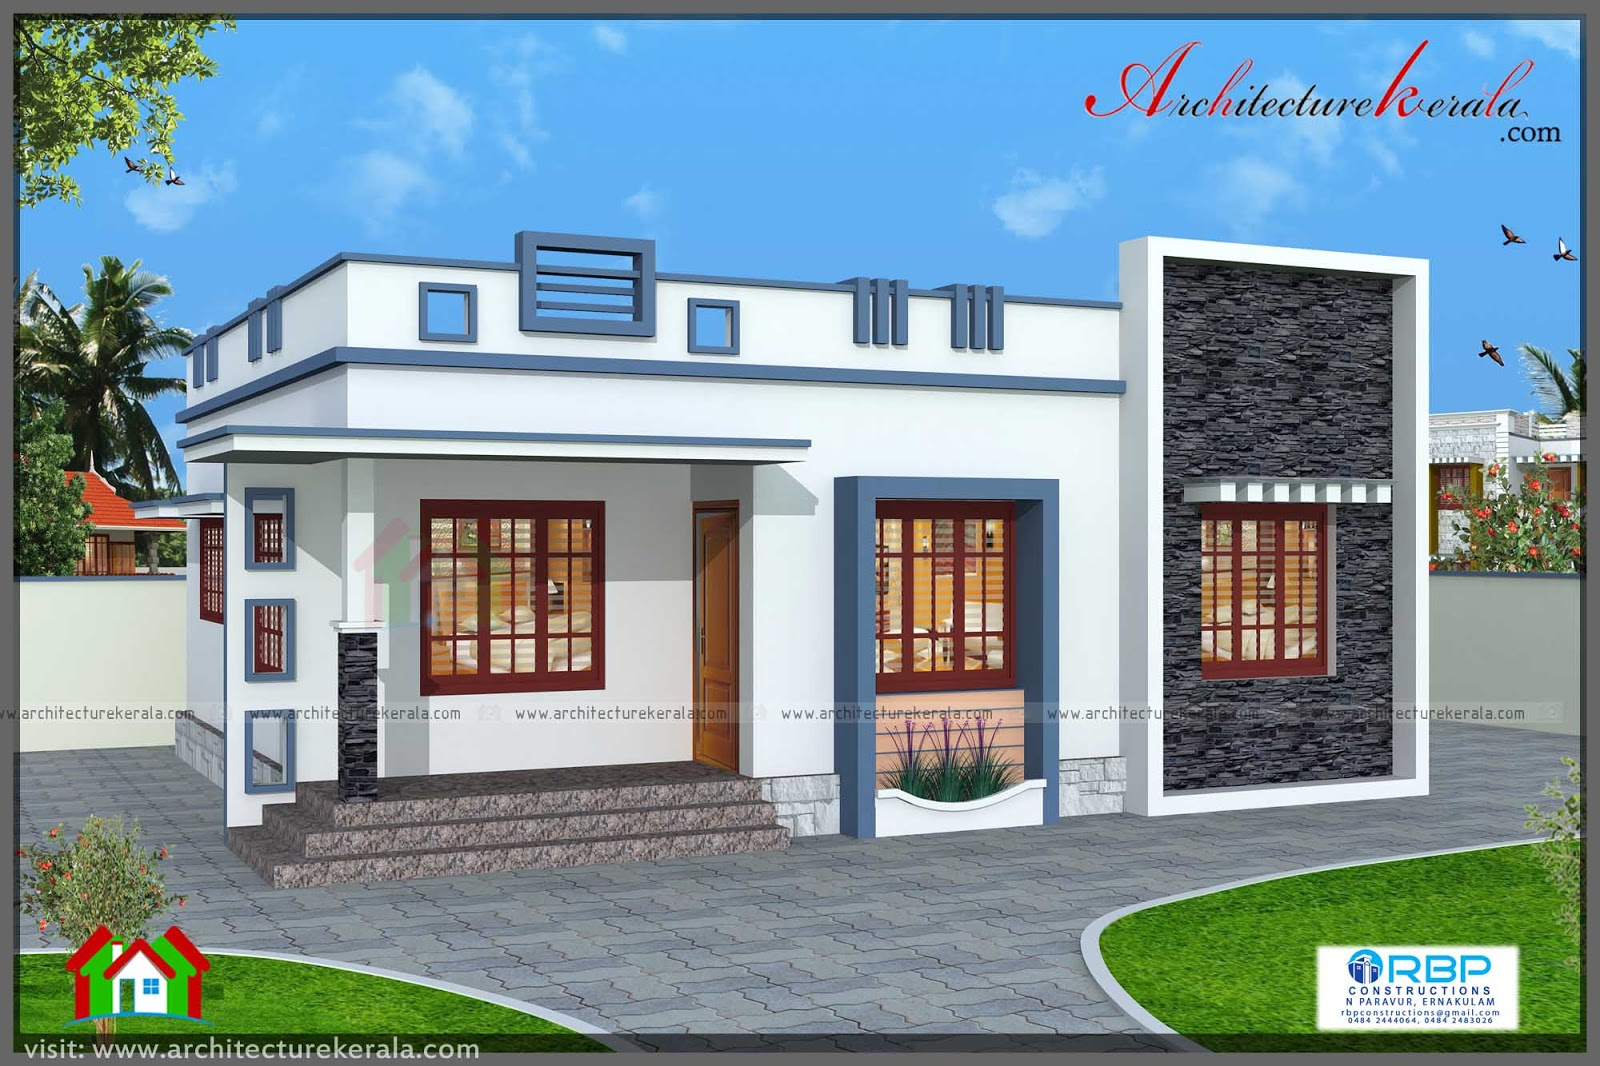 760 square feet 3 bedroom house plan architecture kerala for Houses plans and pictures